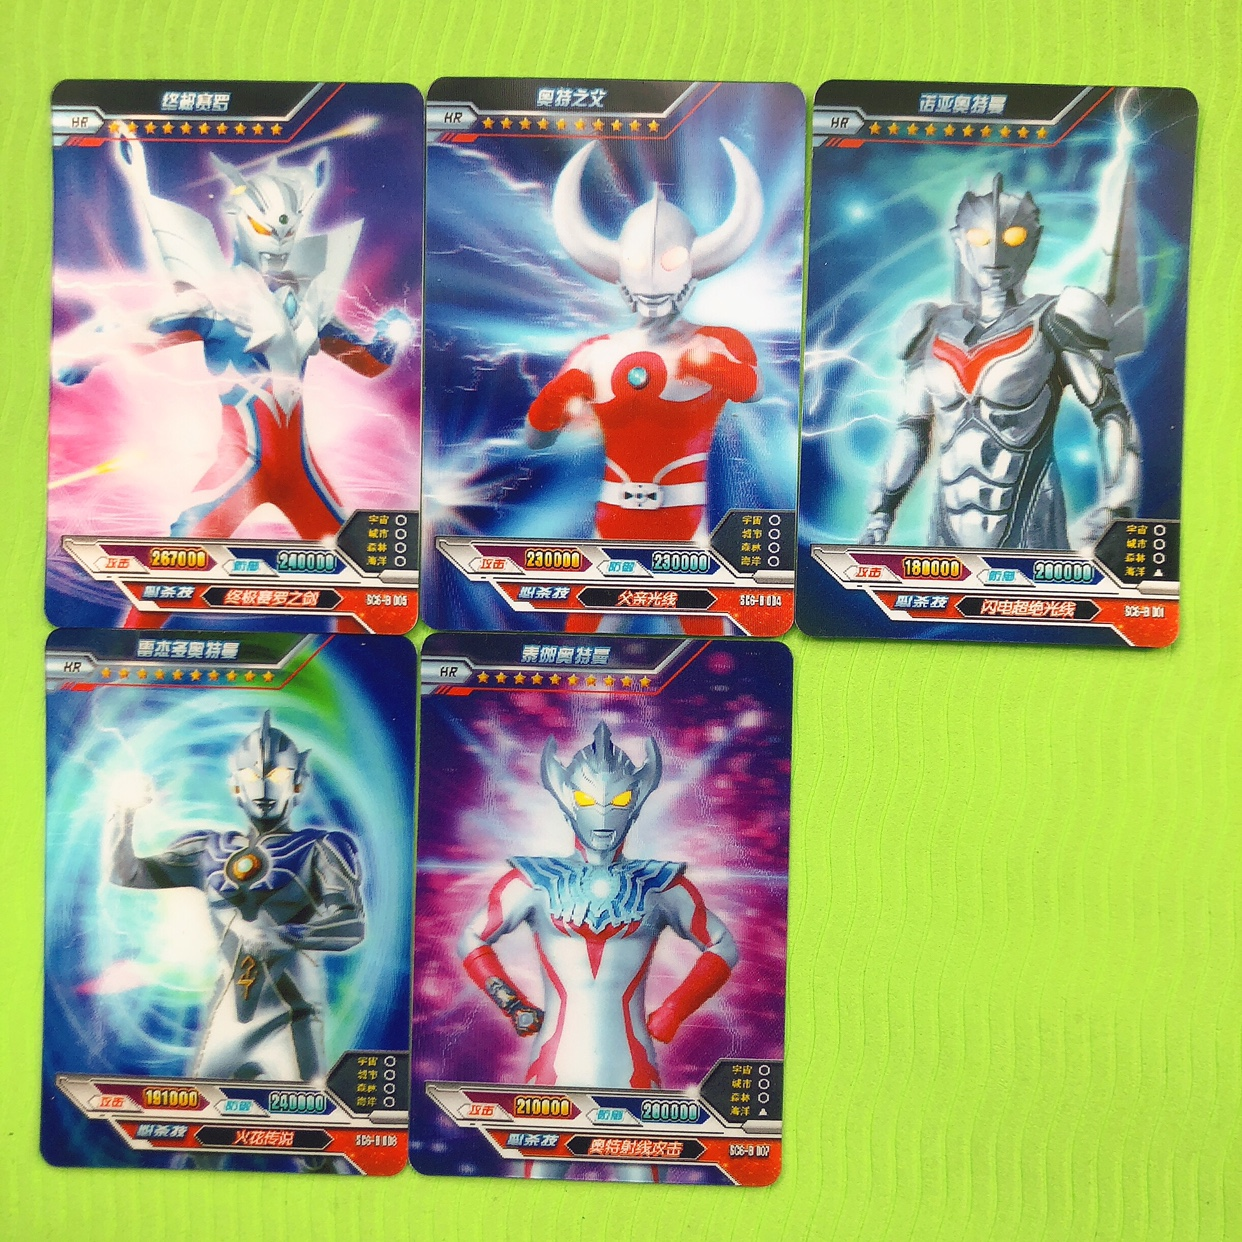 Card gold card 3D stereo card glory toy flashcard oate all star children card king of Aote